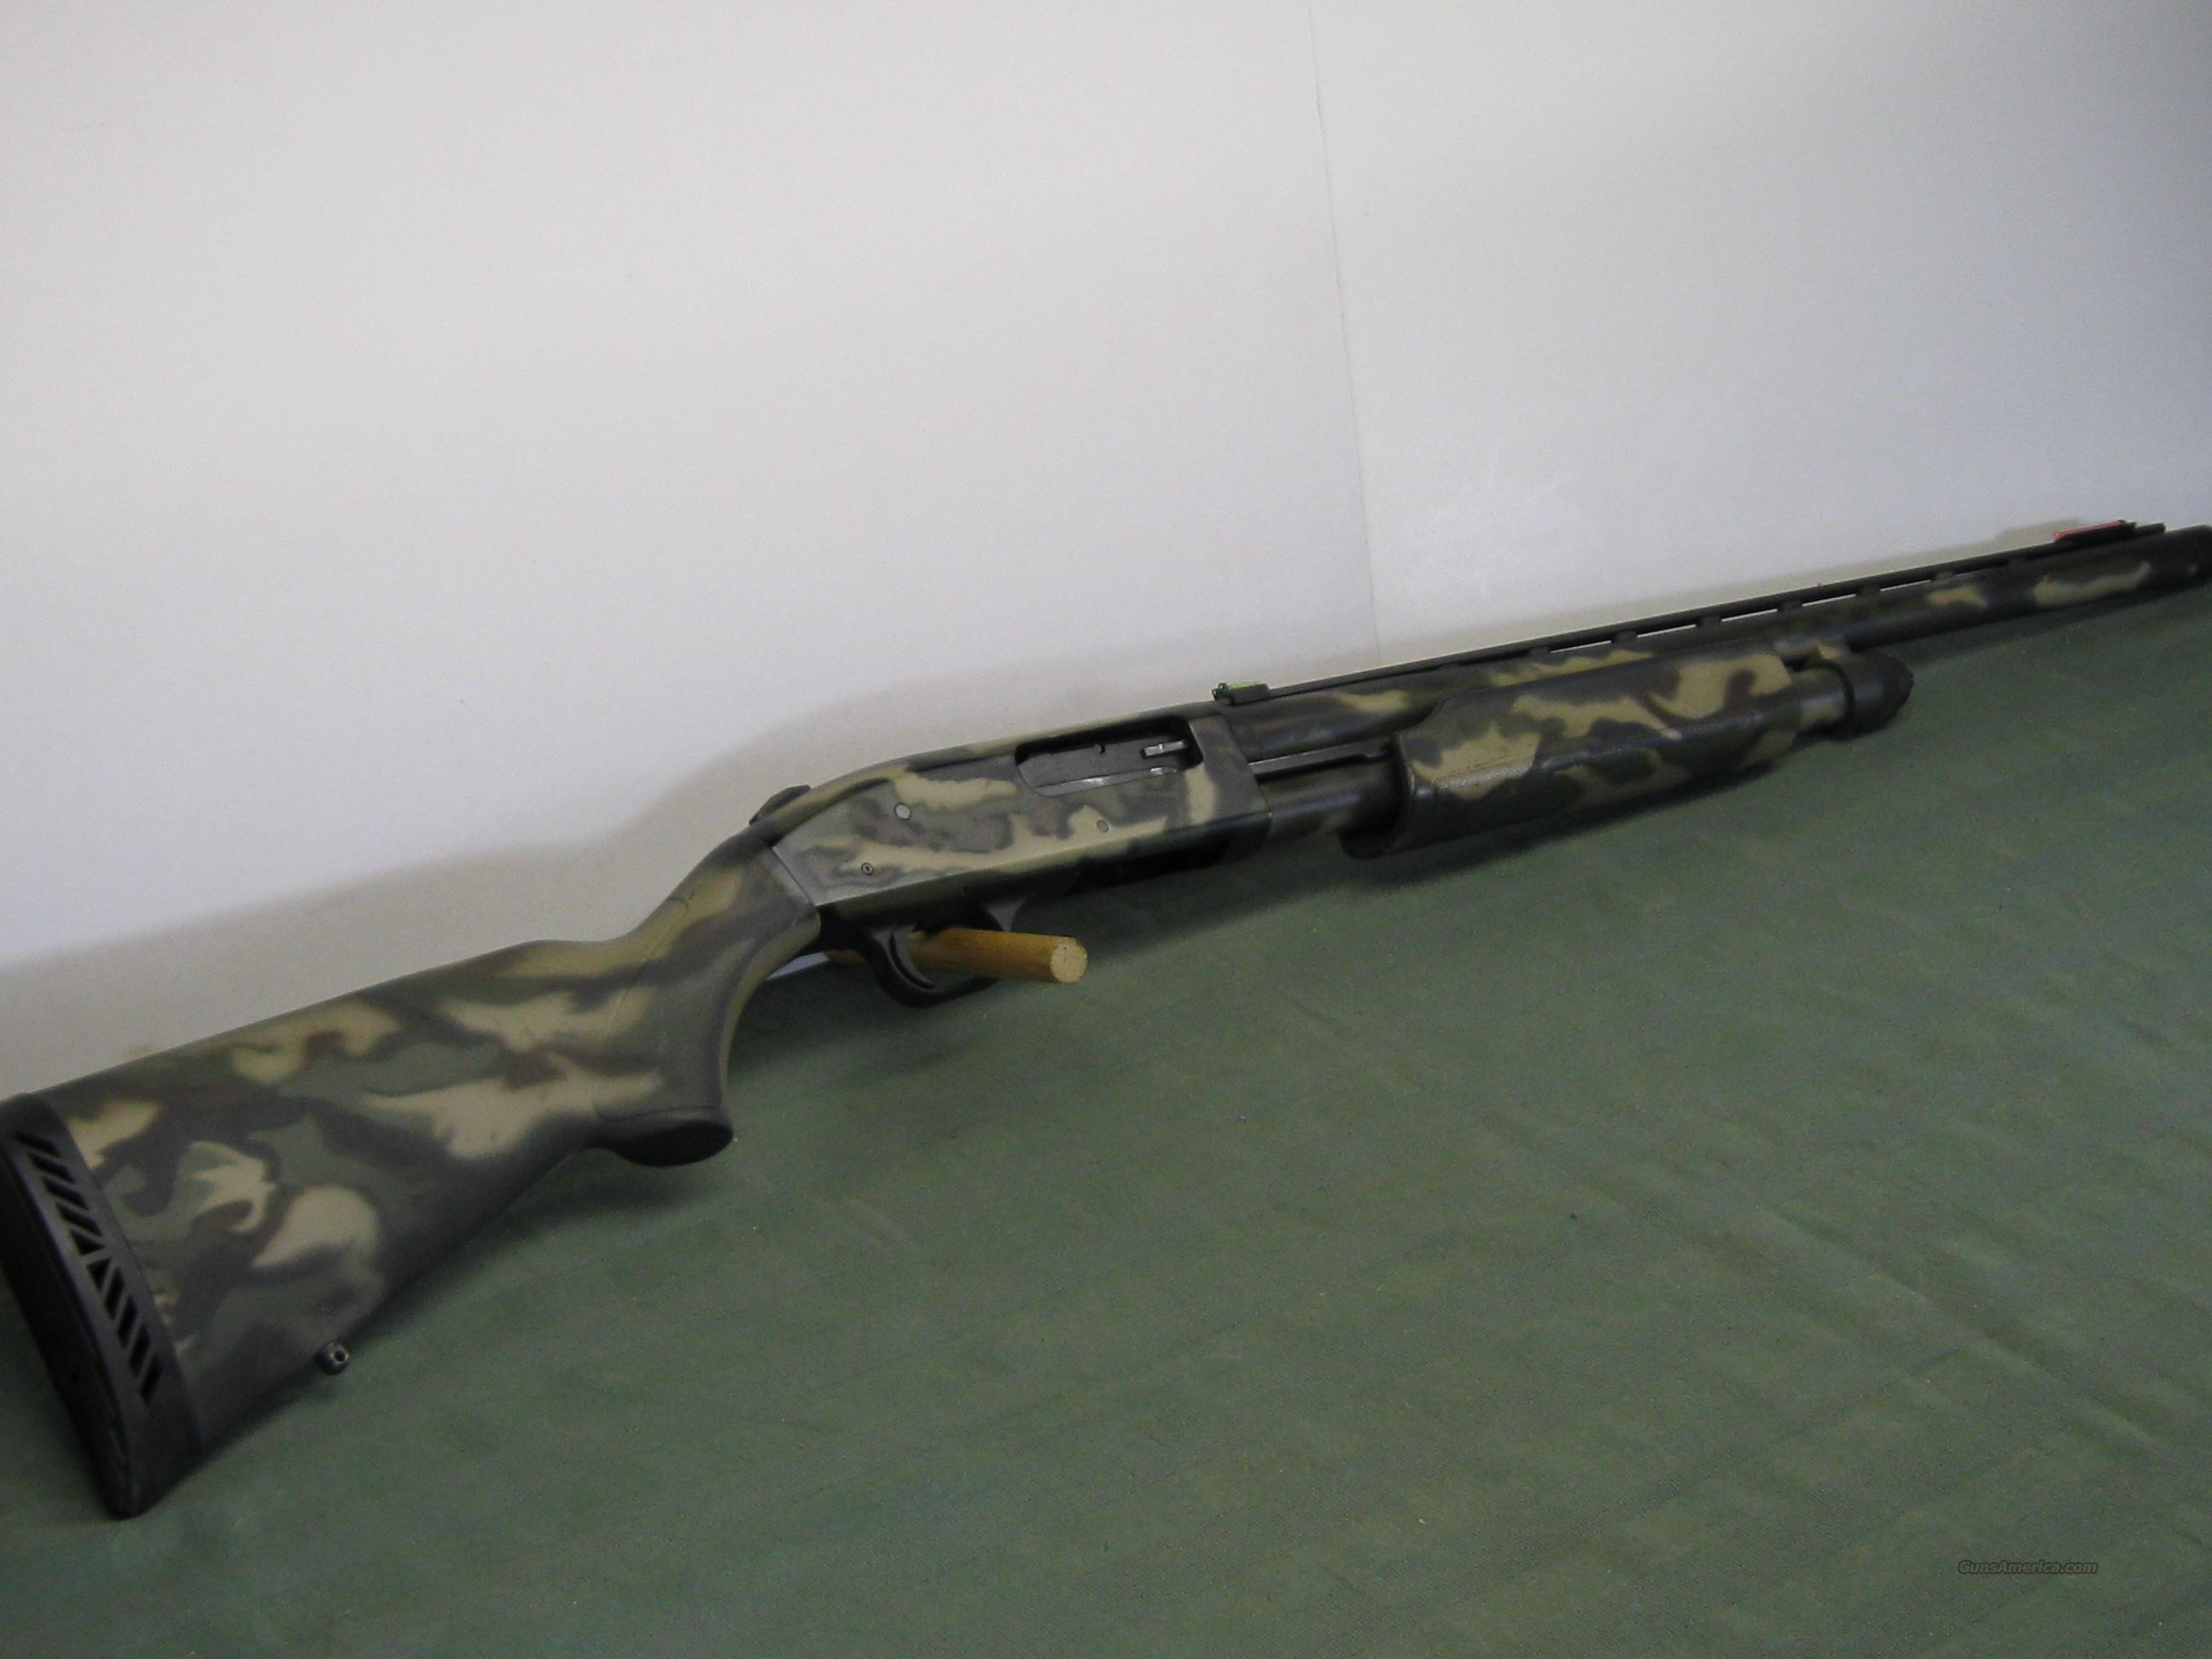 Mossberg -- MODEL 835 ULTI-MAG 12GA CAMO  Guns > Shotguns > Mossberg Shotguns > Pump > Sporting